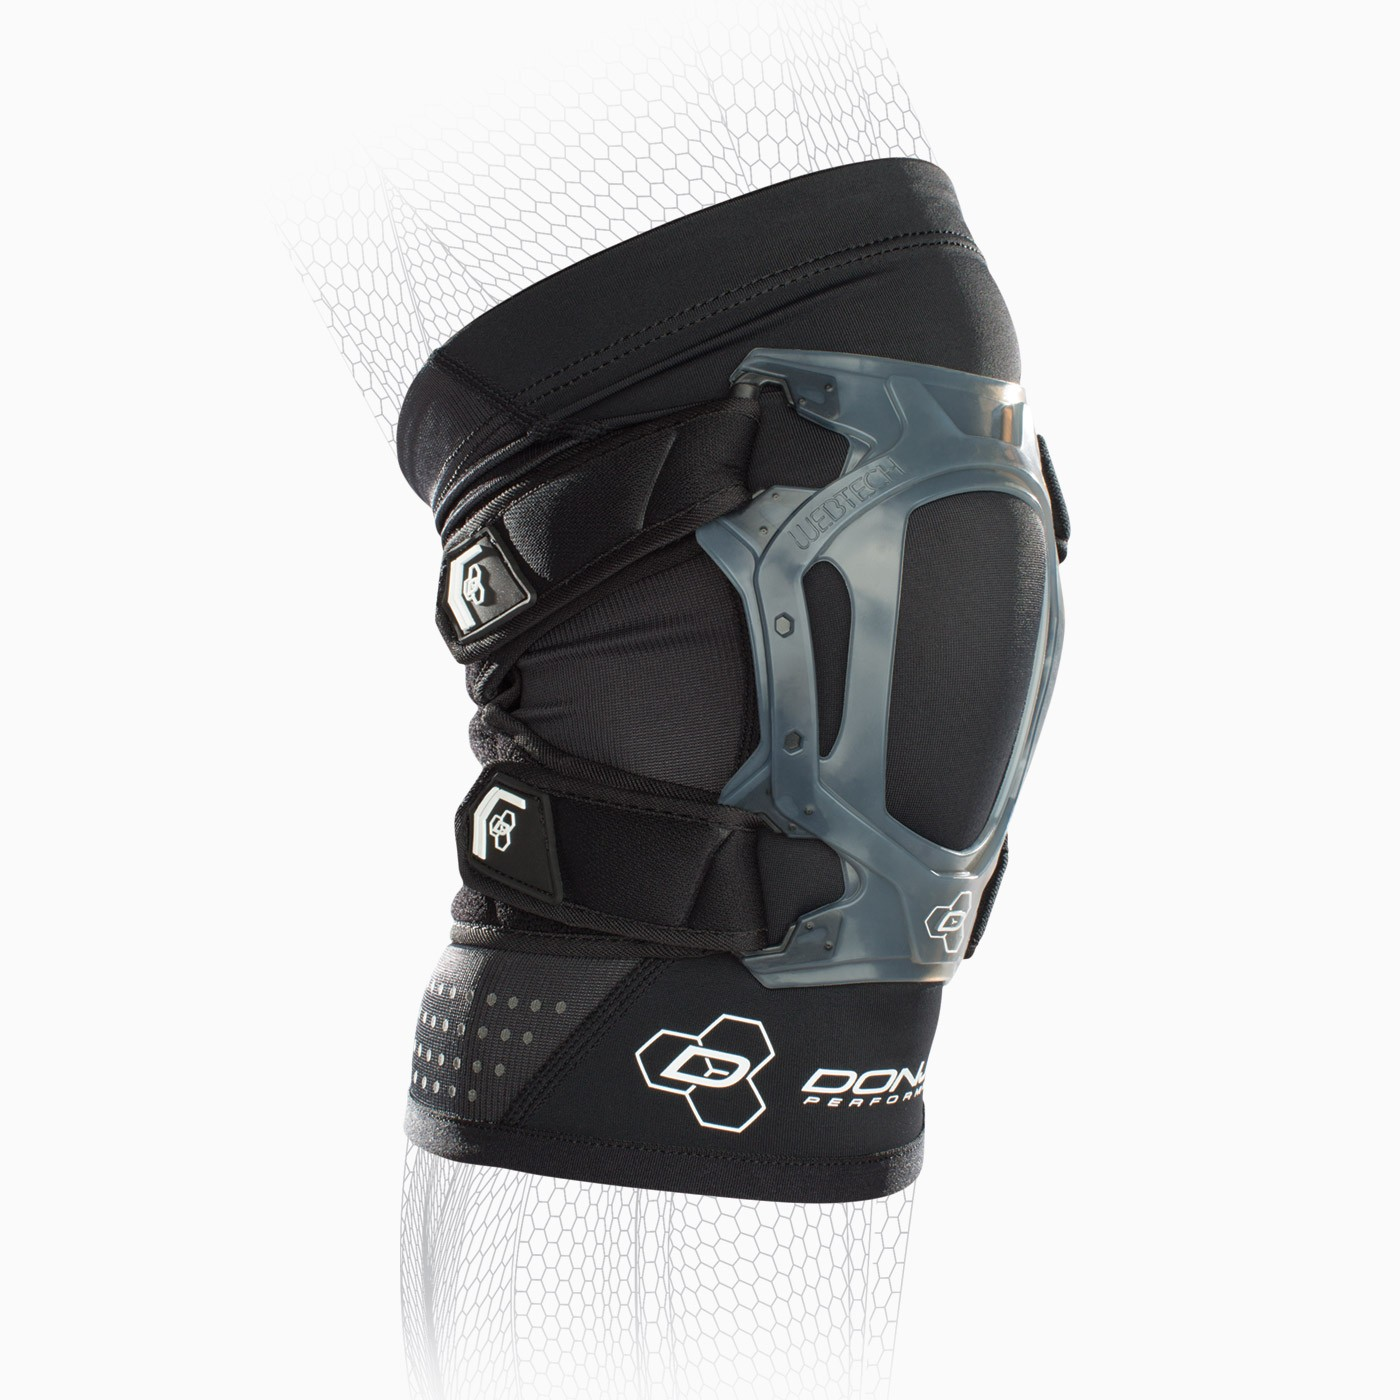 580741ff16 DonJoy Performance Webtech Short Knee Brace | DonJoyPerformance.com